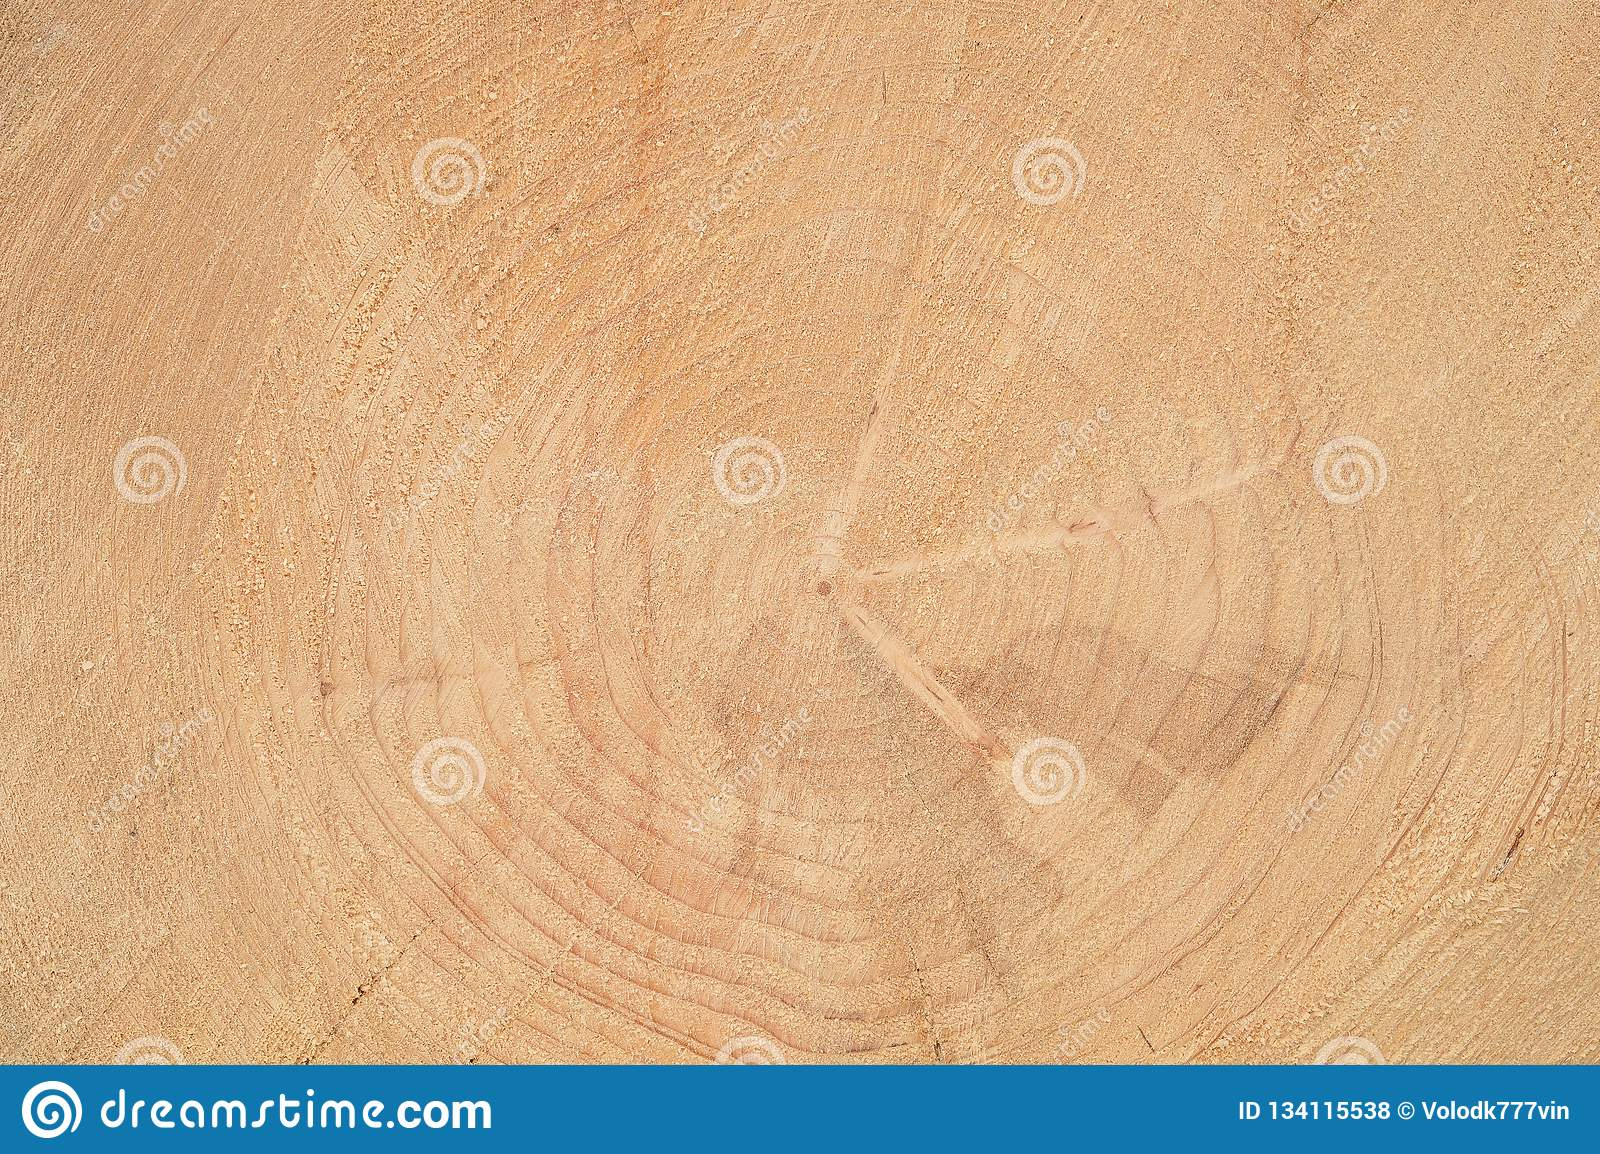 Wooden background. Annual rings on the face of the tree.